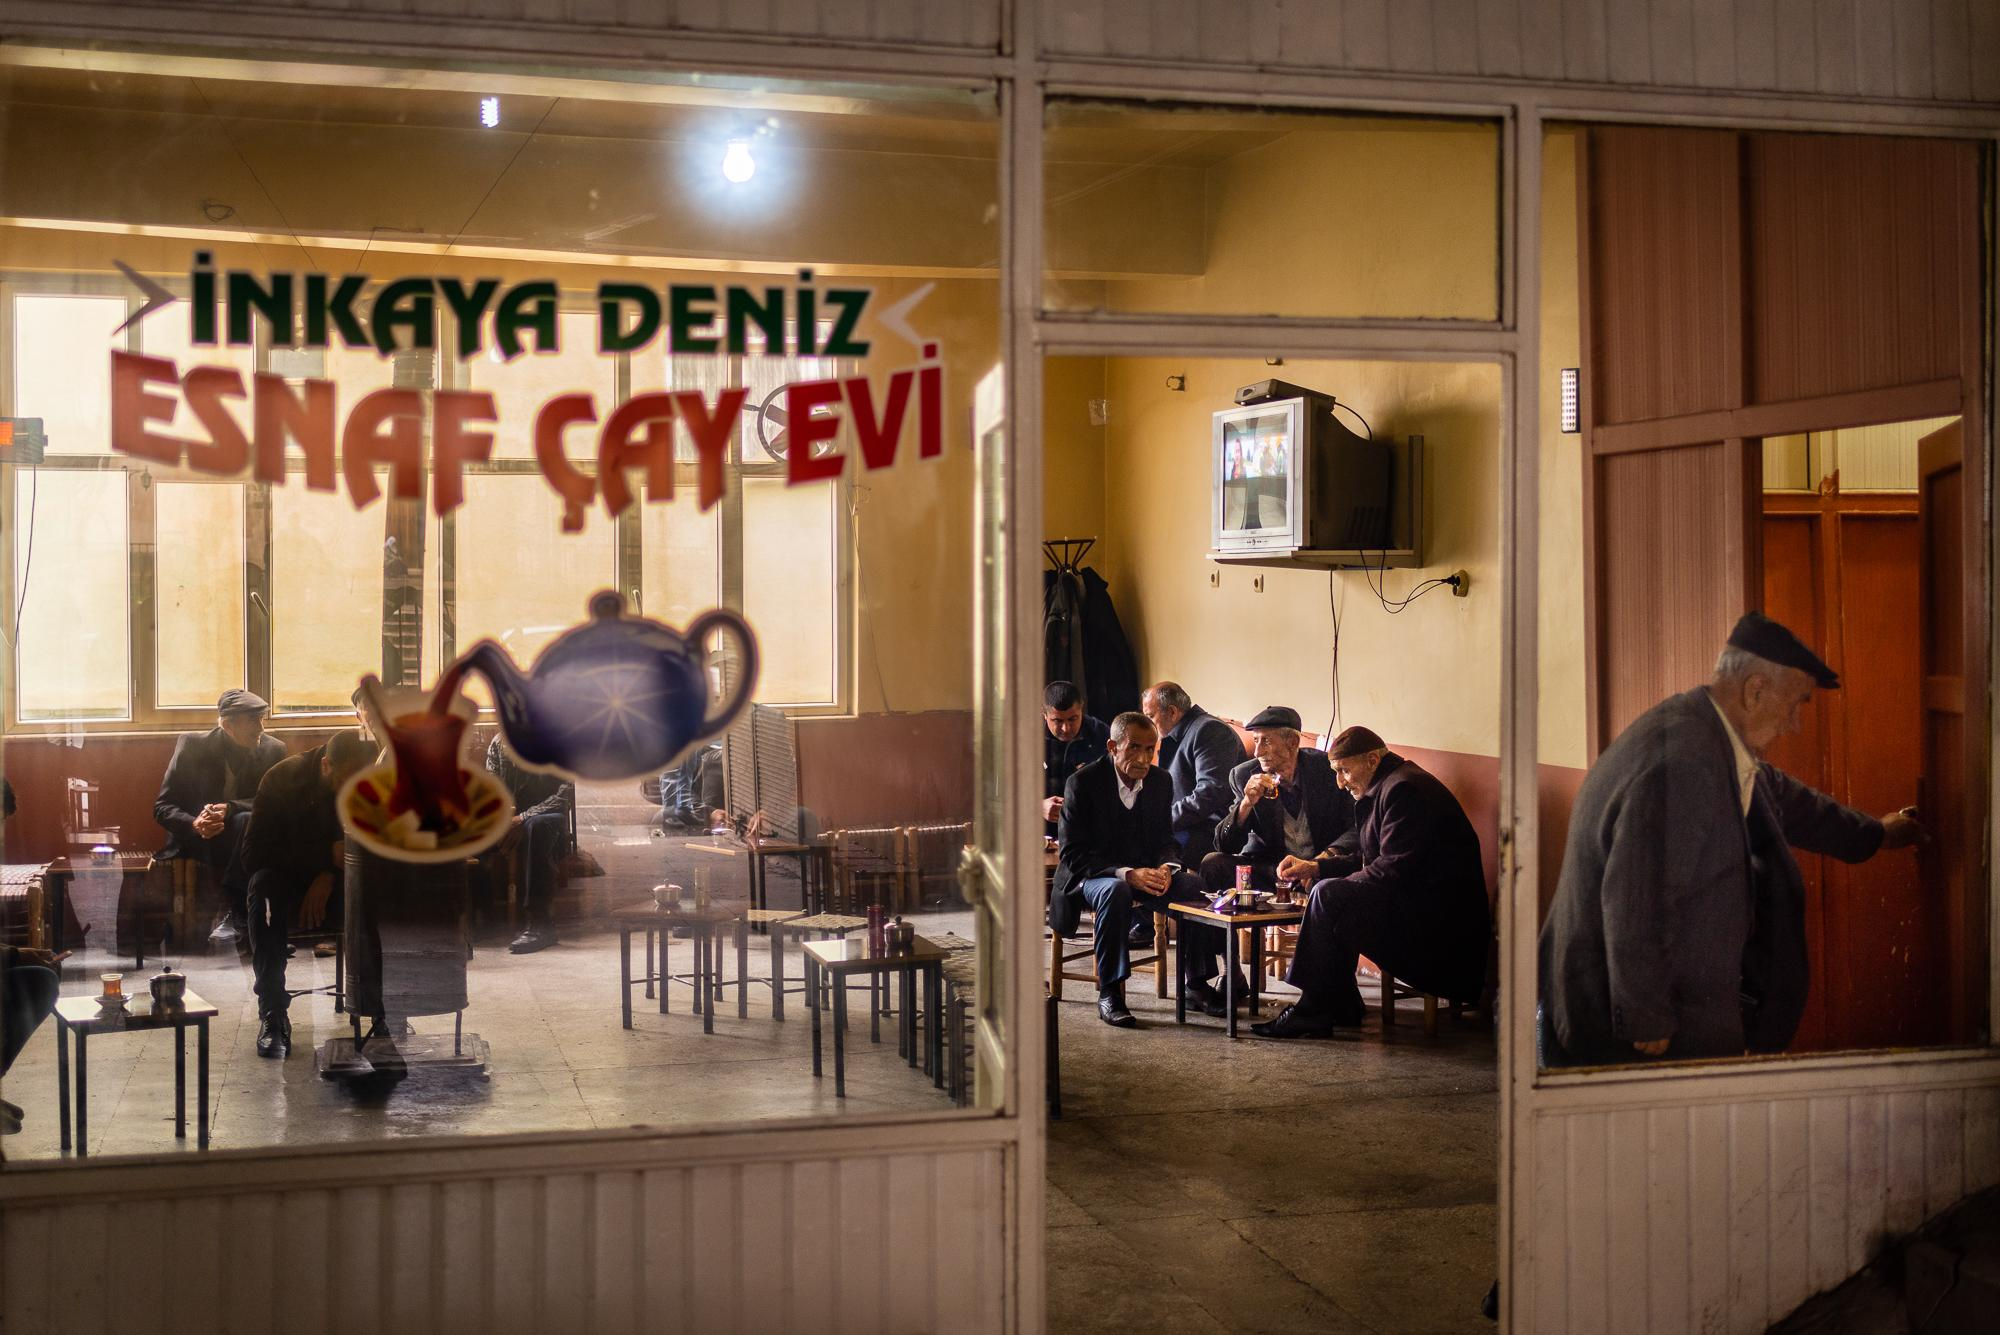 SILVAN, TURKEY – MARCH 28, 2019: Teahouses serve as an important public space for Kurdish men, second only to mosques. Every neighborhood - whether urban or rural - has at least one teahouse, where local people come for a glass of tea, discussing the issues of the day, or playing dominoes with friends.